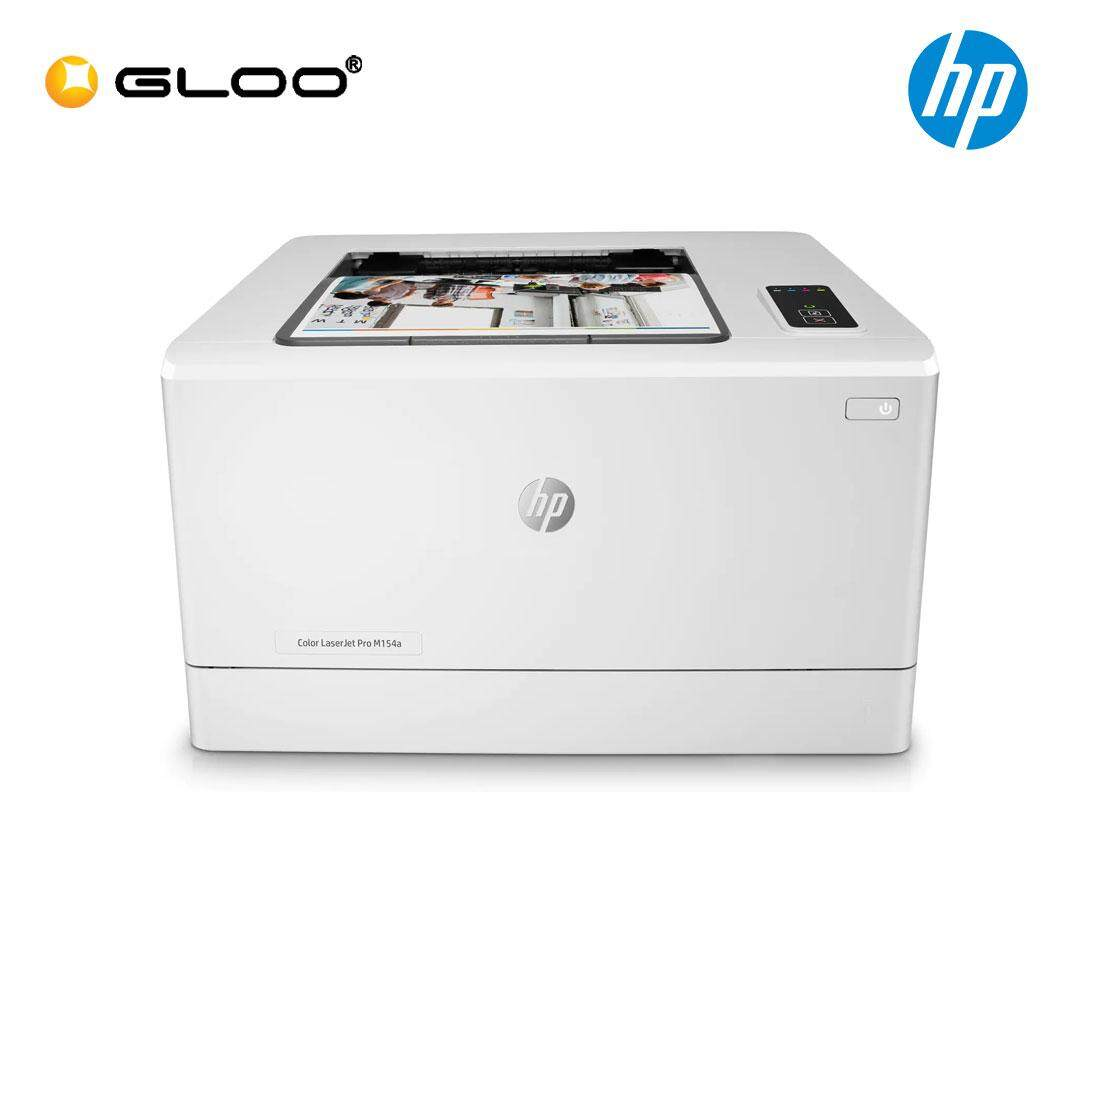 HP Color LaserJet Pro M154a (T6B51A) - White